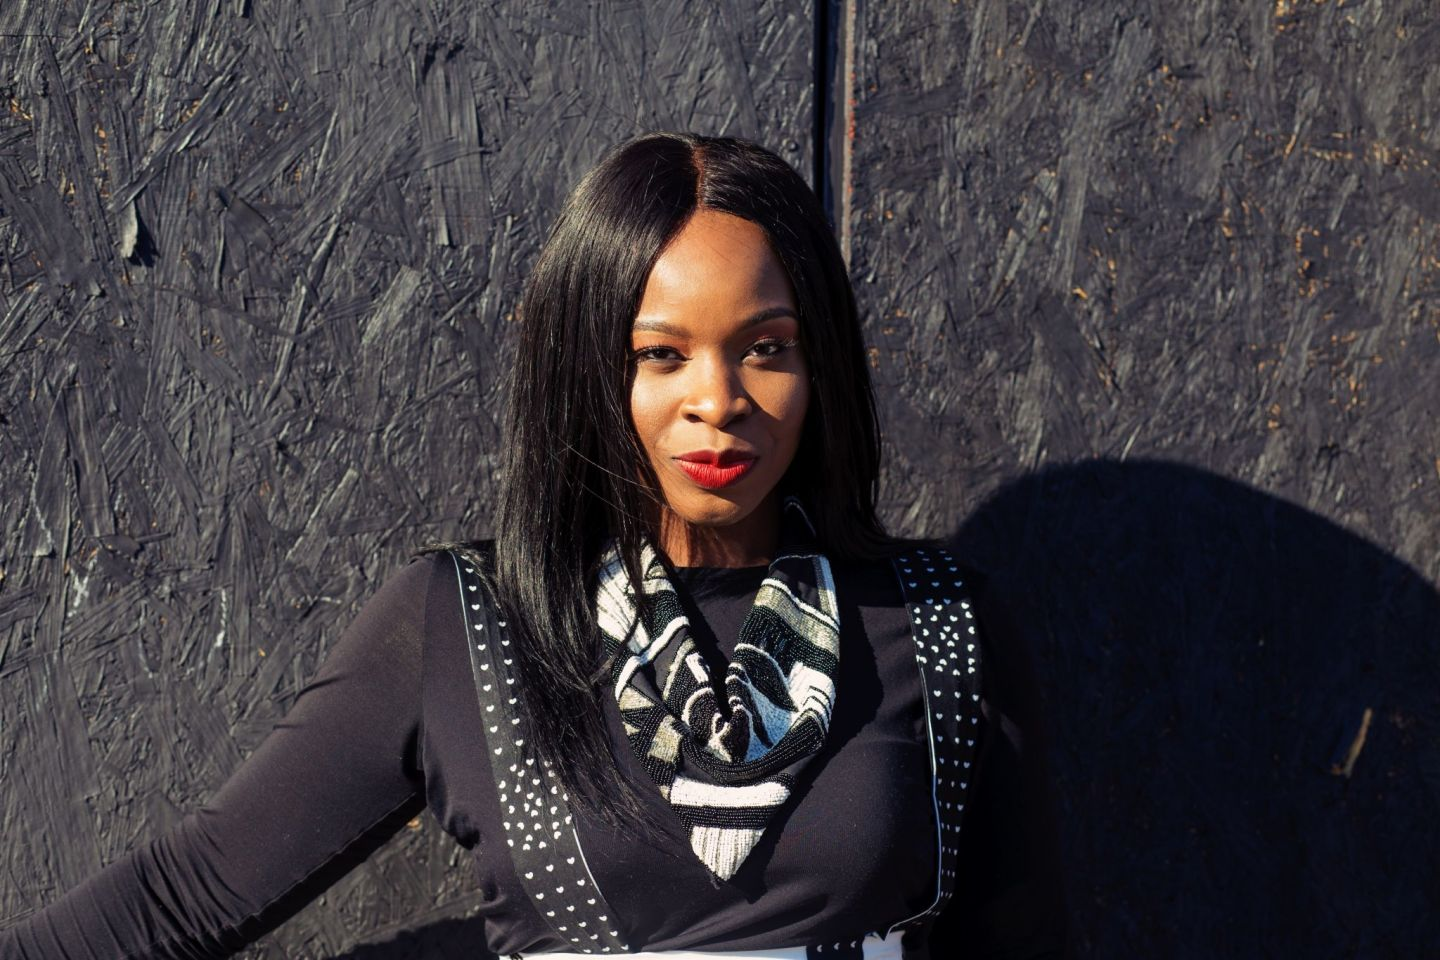 You Need Face to Face Interaction and A Website – Not Just Social Media | Adebisi Adebowale